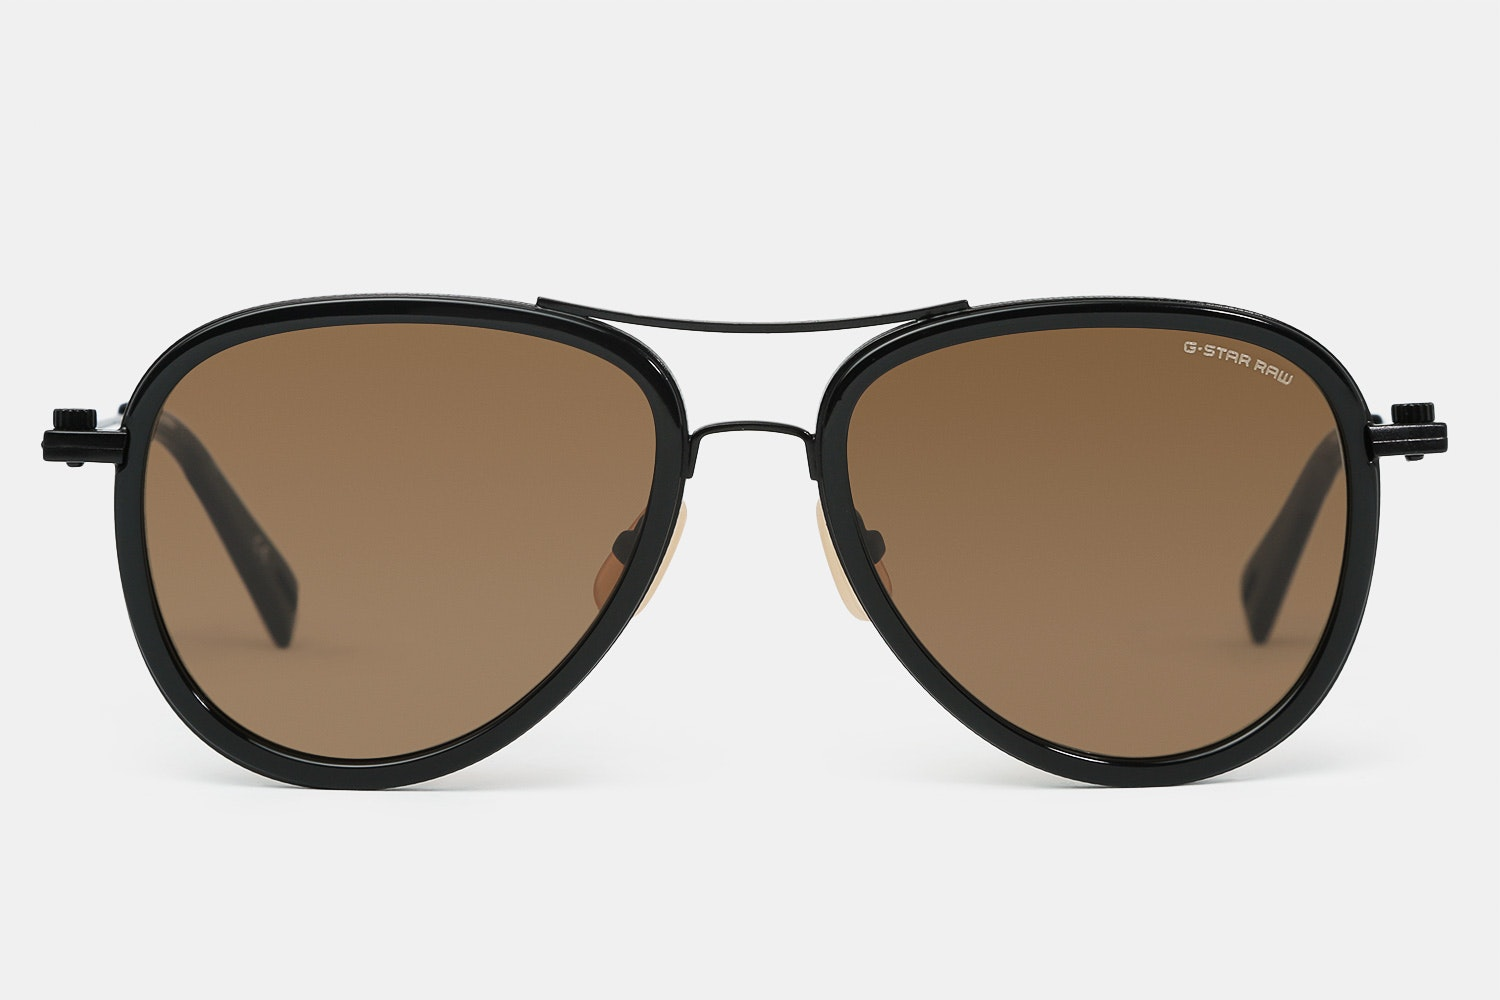 Black frame with brown lenses